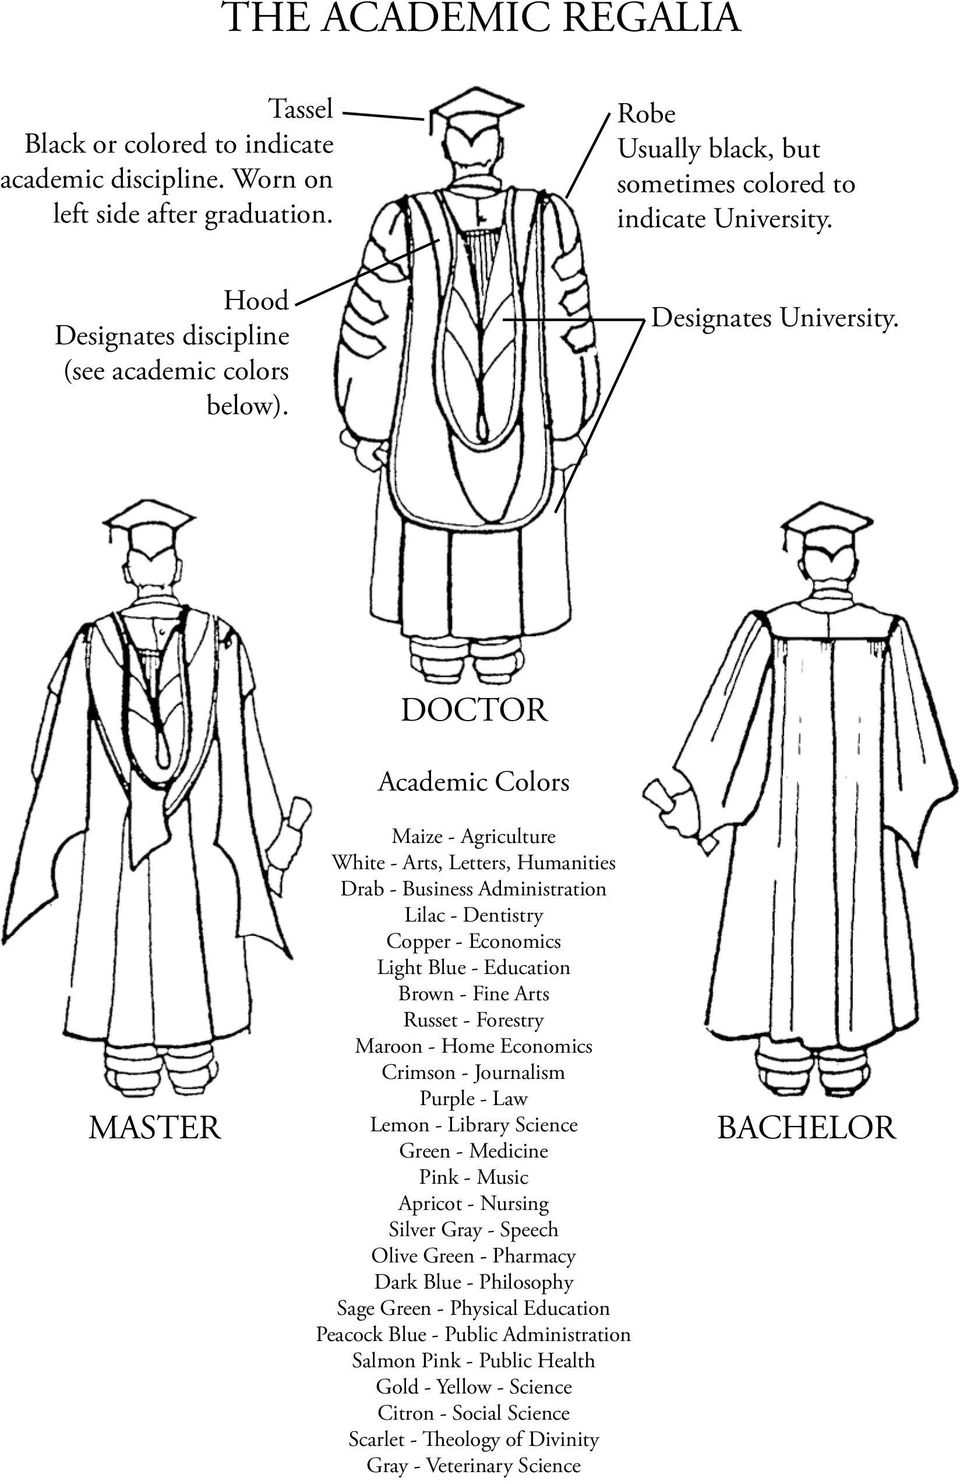 MASTER DOCTOR Academic Colors Maize - Agriculture White - Arts, Letters, Humanities Drab - Business Administration Lilac - Dentistry Copper - Economics Light Blue - Education Brown - Fine Arts Russet